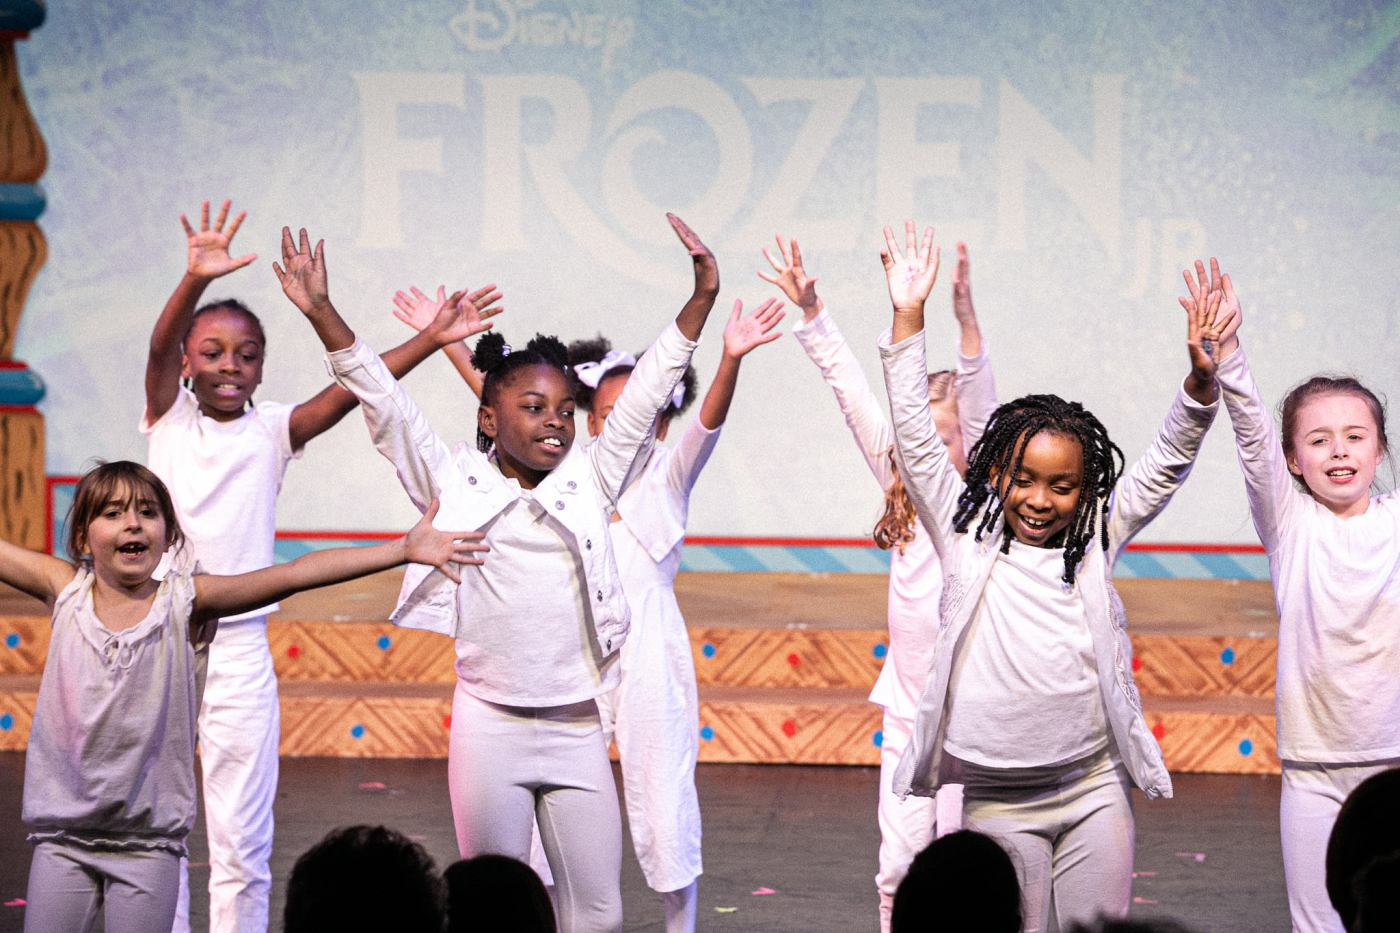 Children in white performing for a Red Mountain Theatre performance